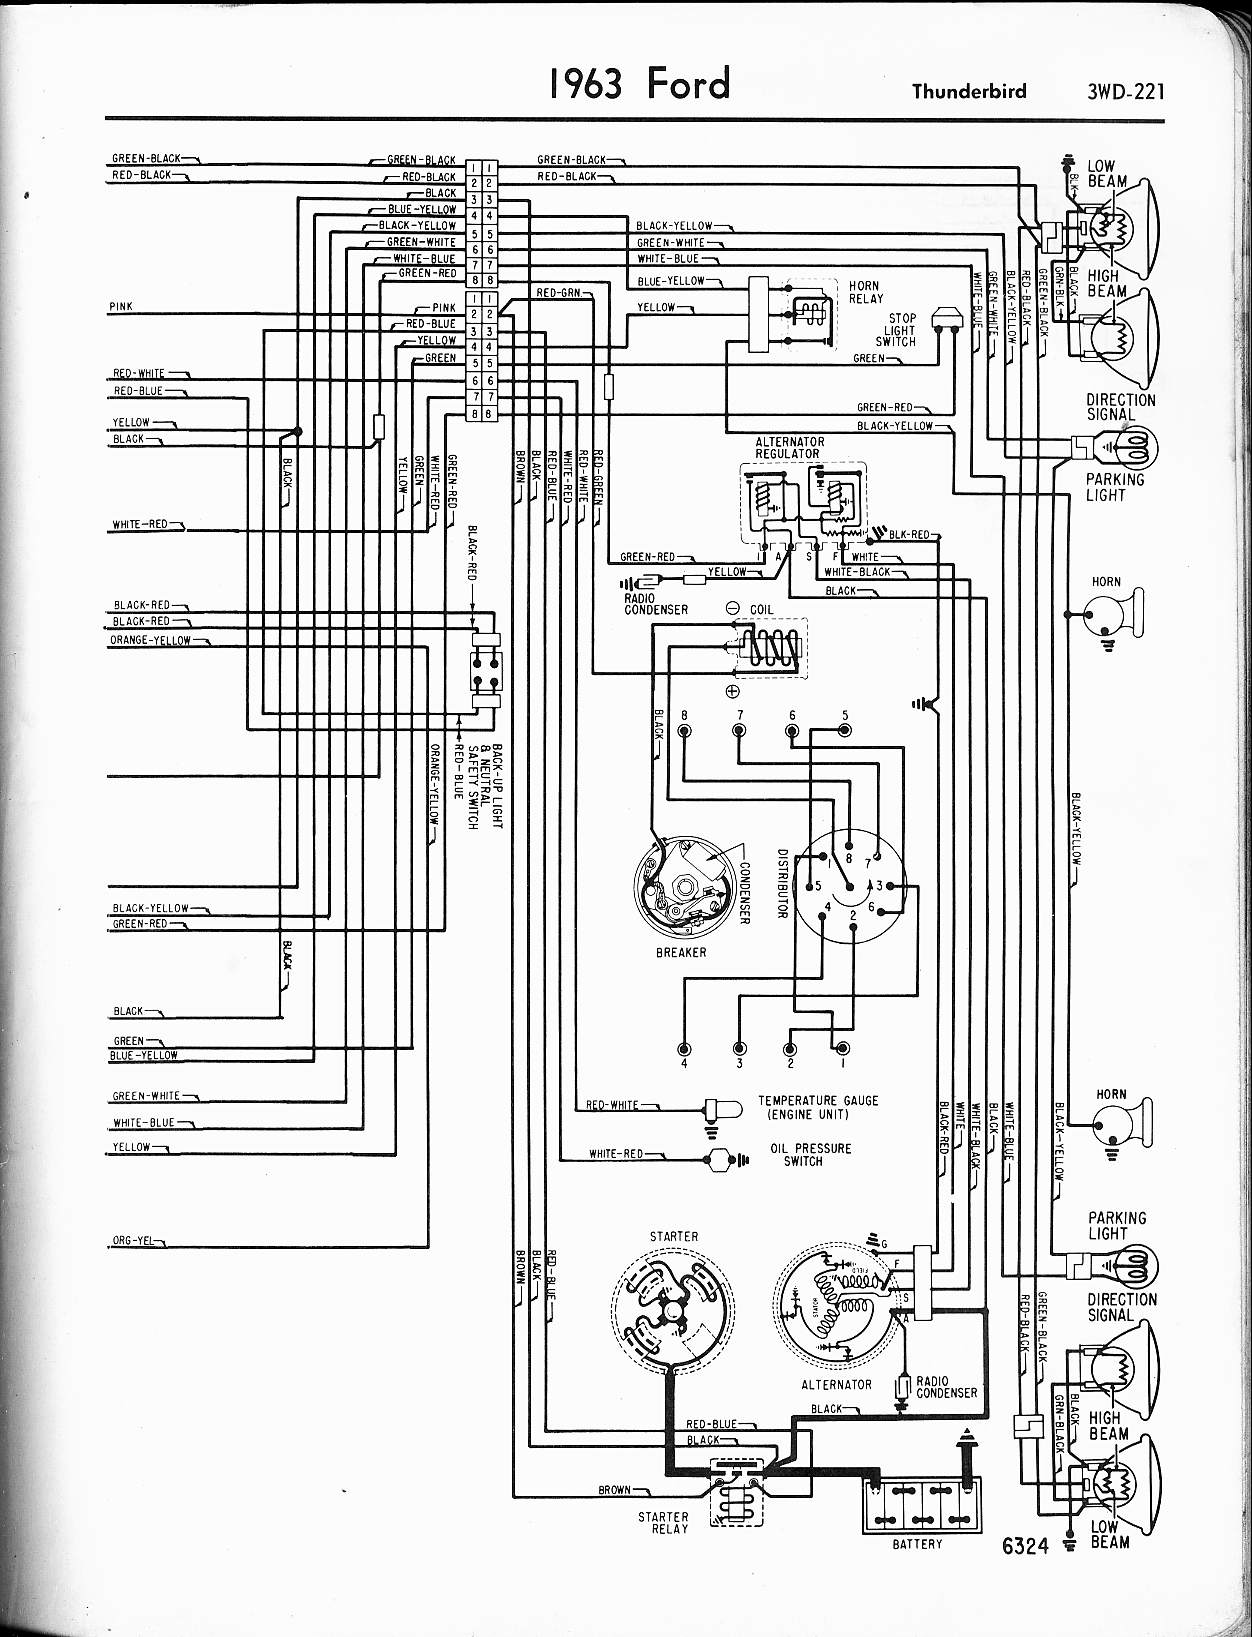 dodge nitro 2008 radio harness diagram further 1963